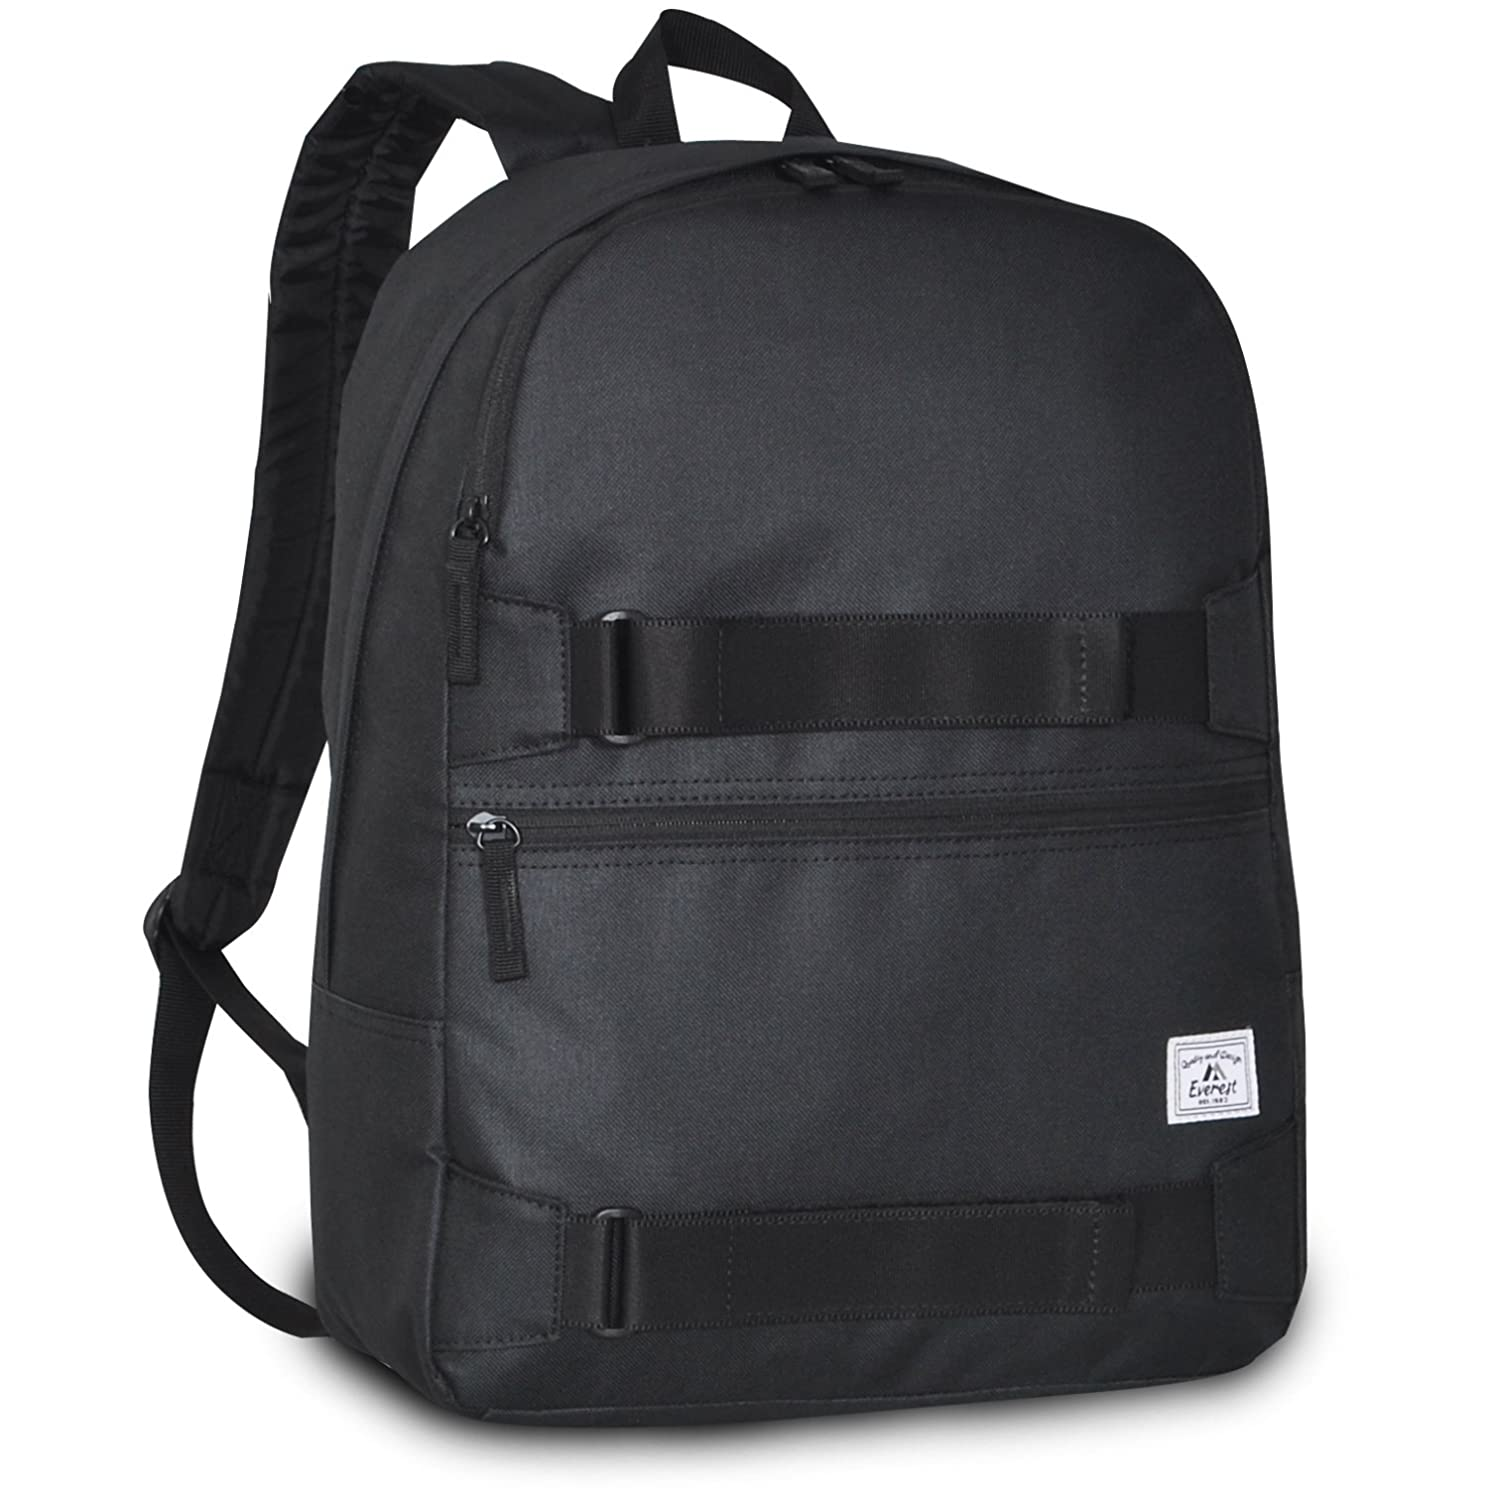 dakine heli pro 20 with 2416 What Stores Sell Dakine Backpacks on Dakine backpacks   dakine heli pro dlx 24l snow pack   inferno 223366 furthermore Dakine Heli Pro 20l Backpack in addition Dakine Heli Pro 20l Rugzak Dames Peahd52006 besides 5756 Sac A Dos Heli Pro 20l Dakine furthermore 2416 What Stores Sell Dakine Backpacks.